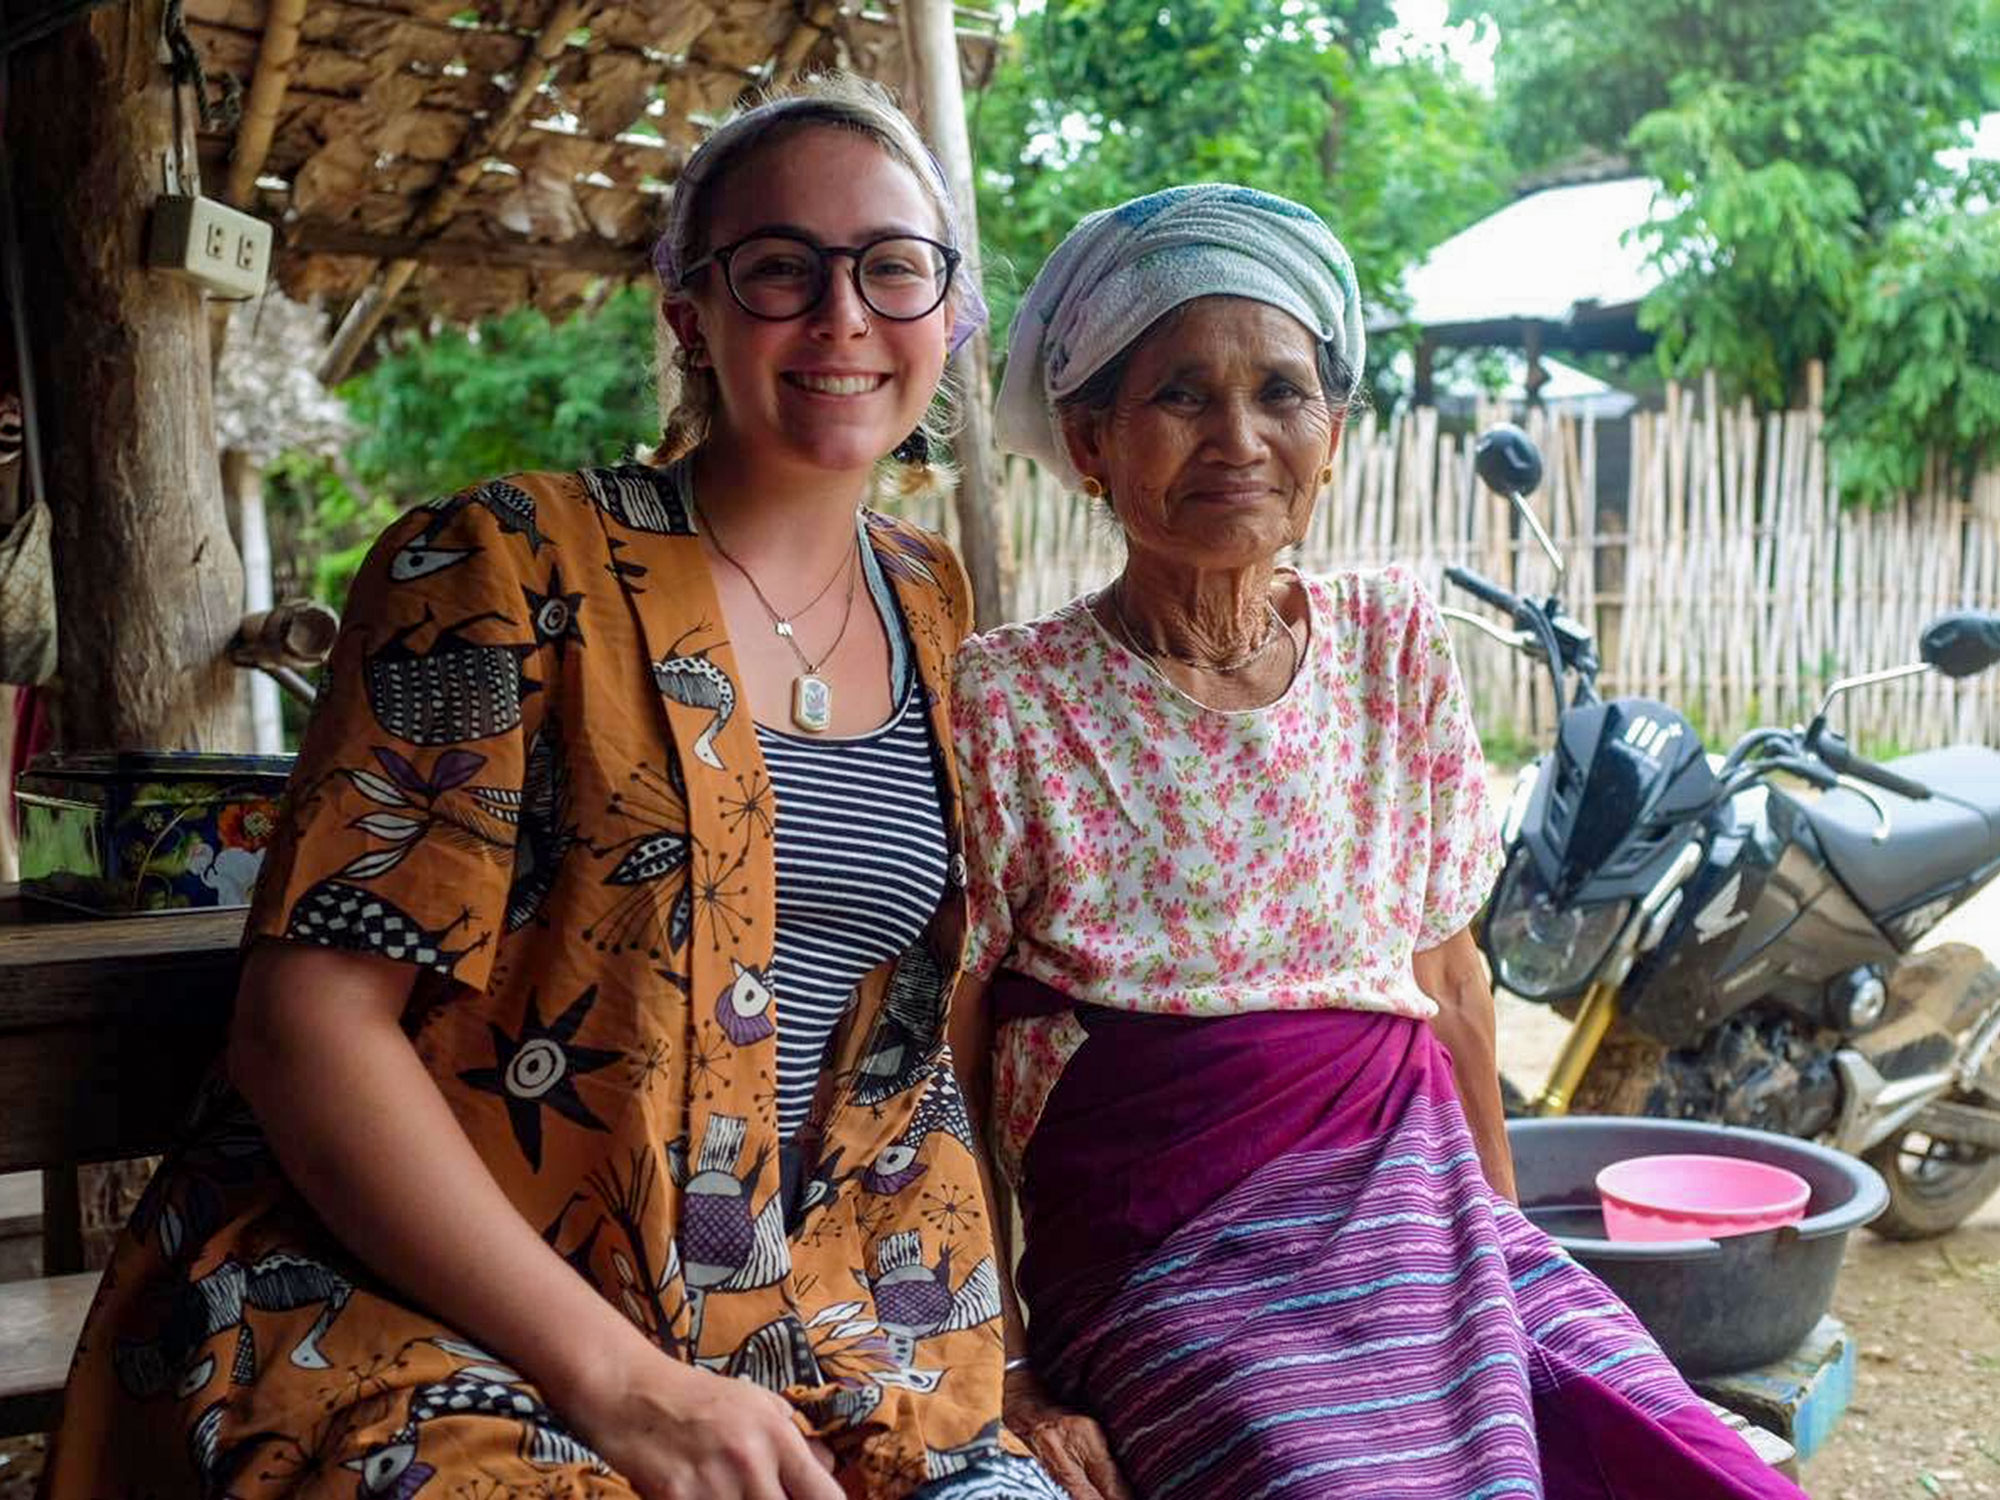 UCEAP student and older woman pose on a bench.